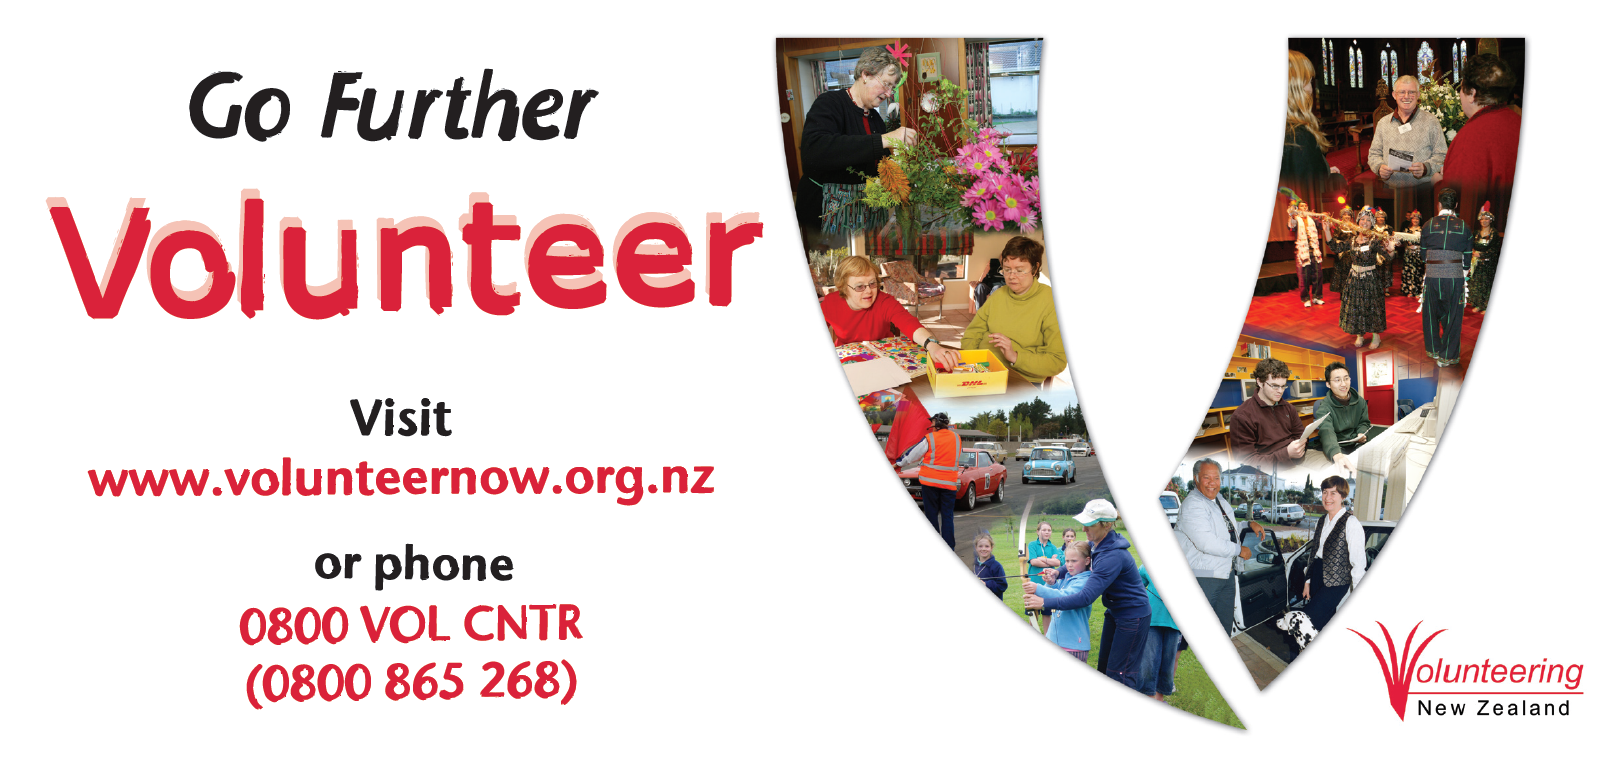 2008 - Go Further, Volunteer NVW